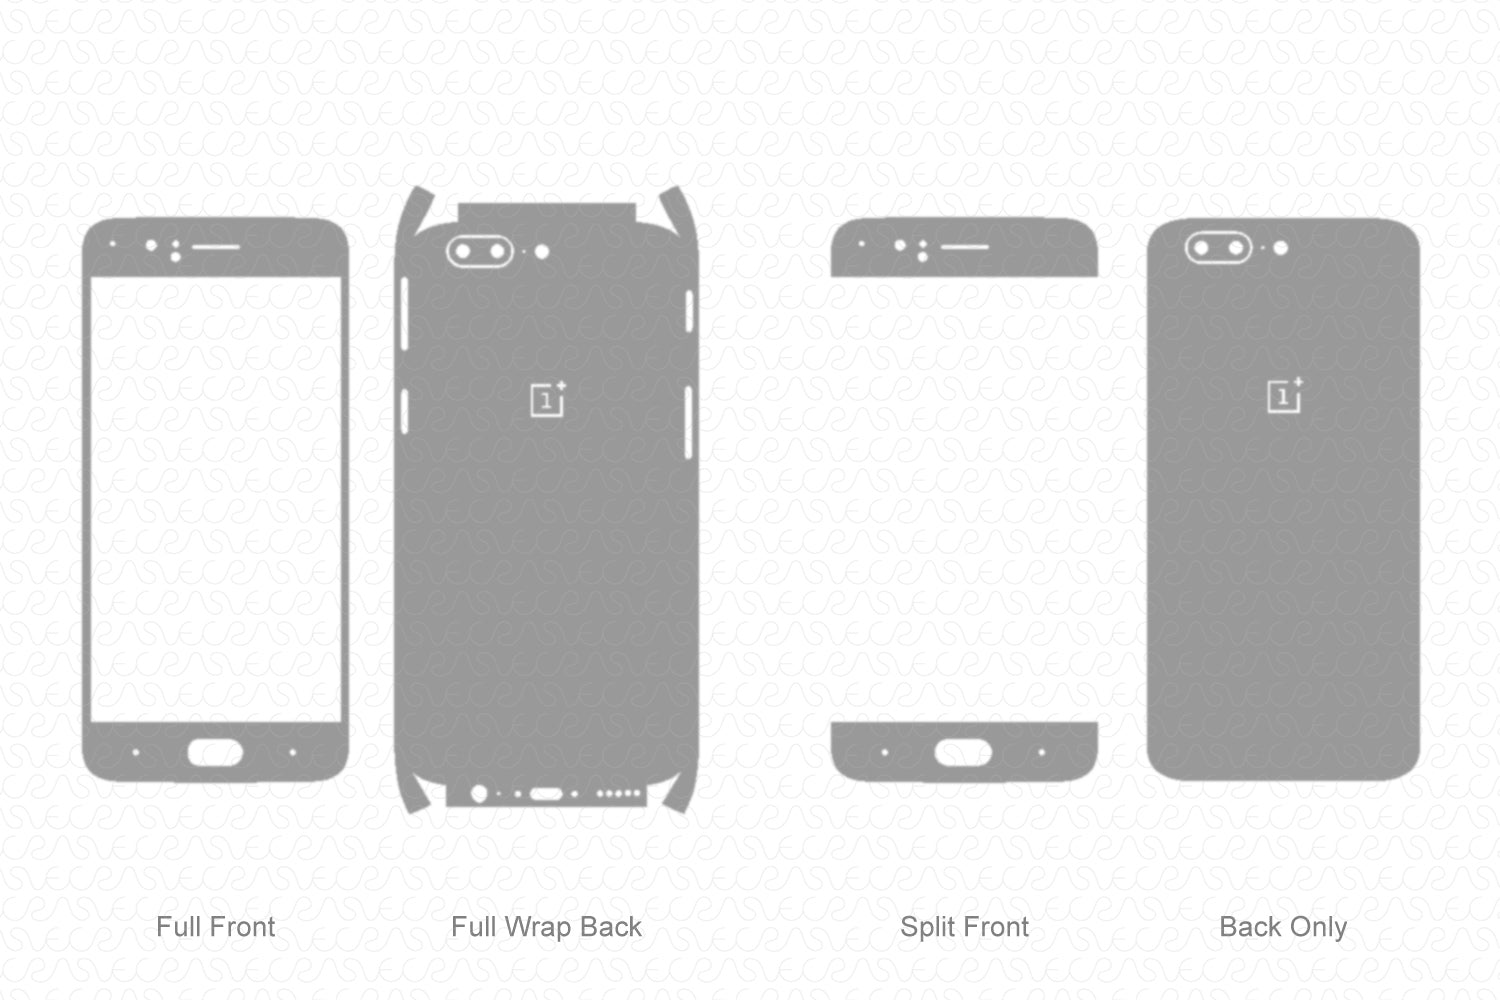 OnePlus 5 (2017) Skin Template Vector